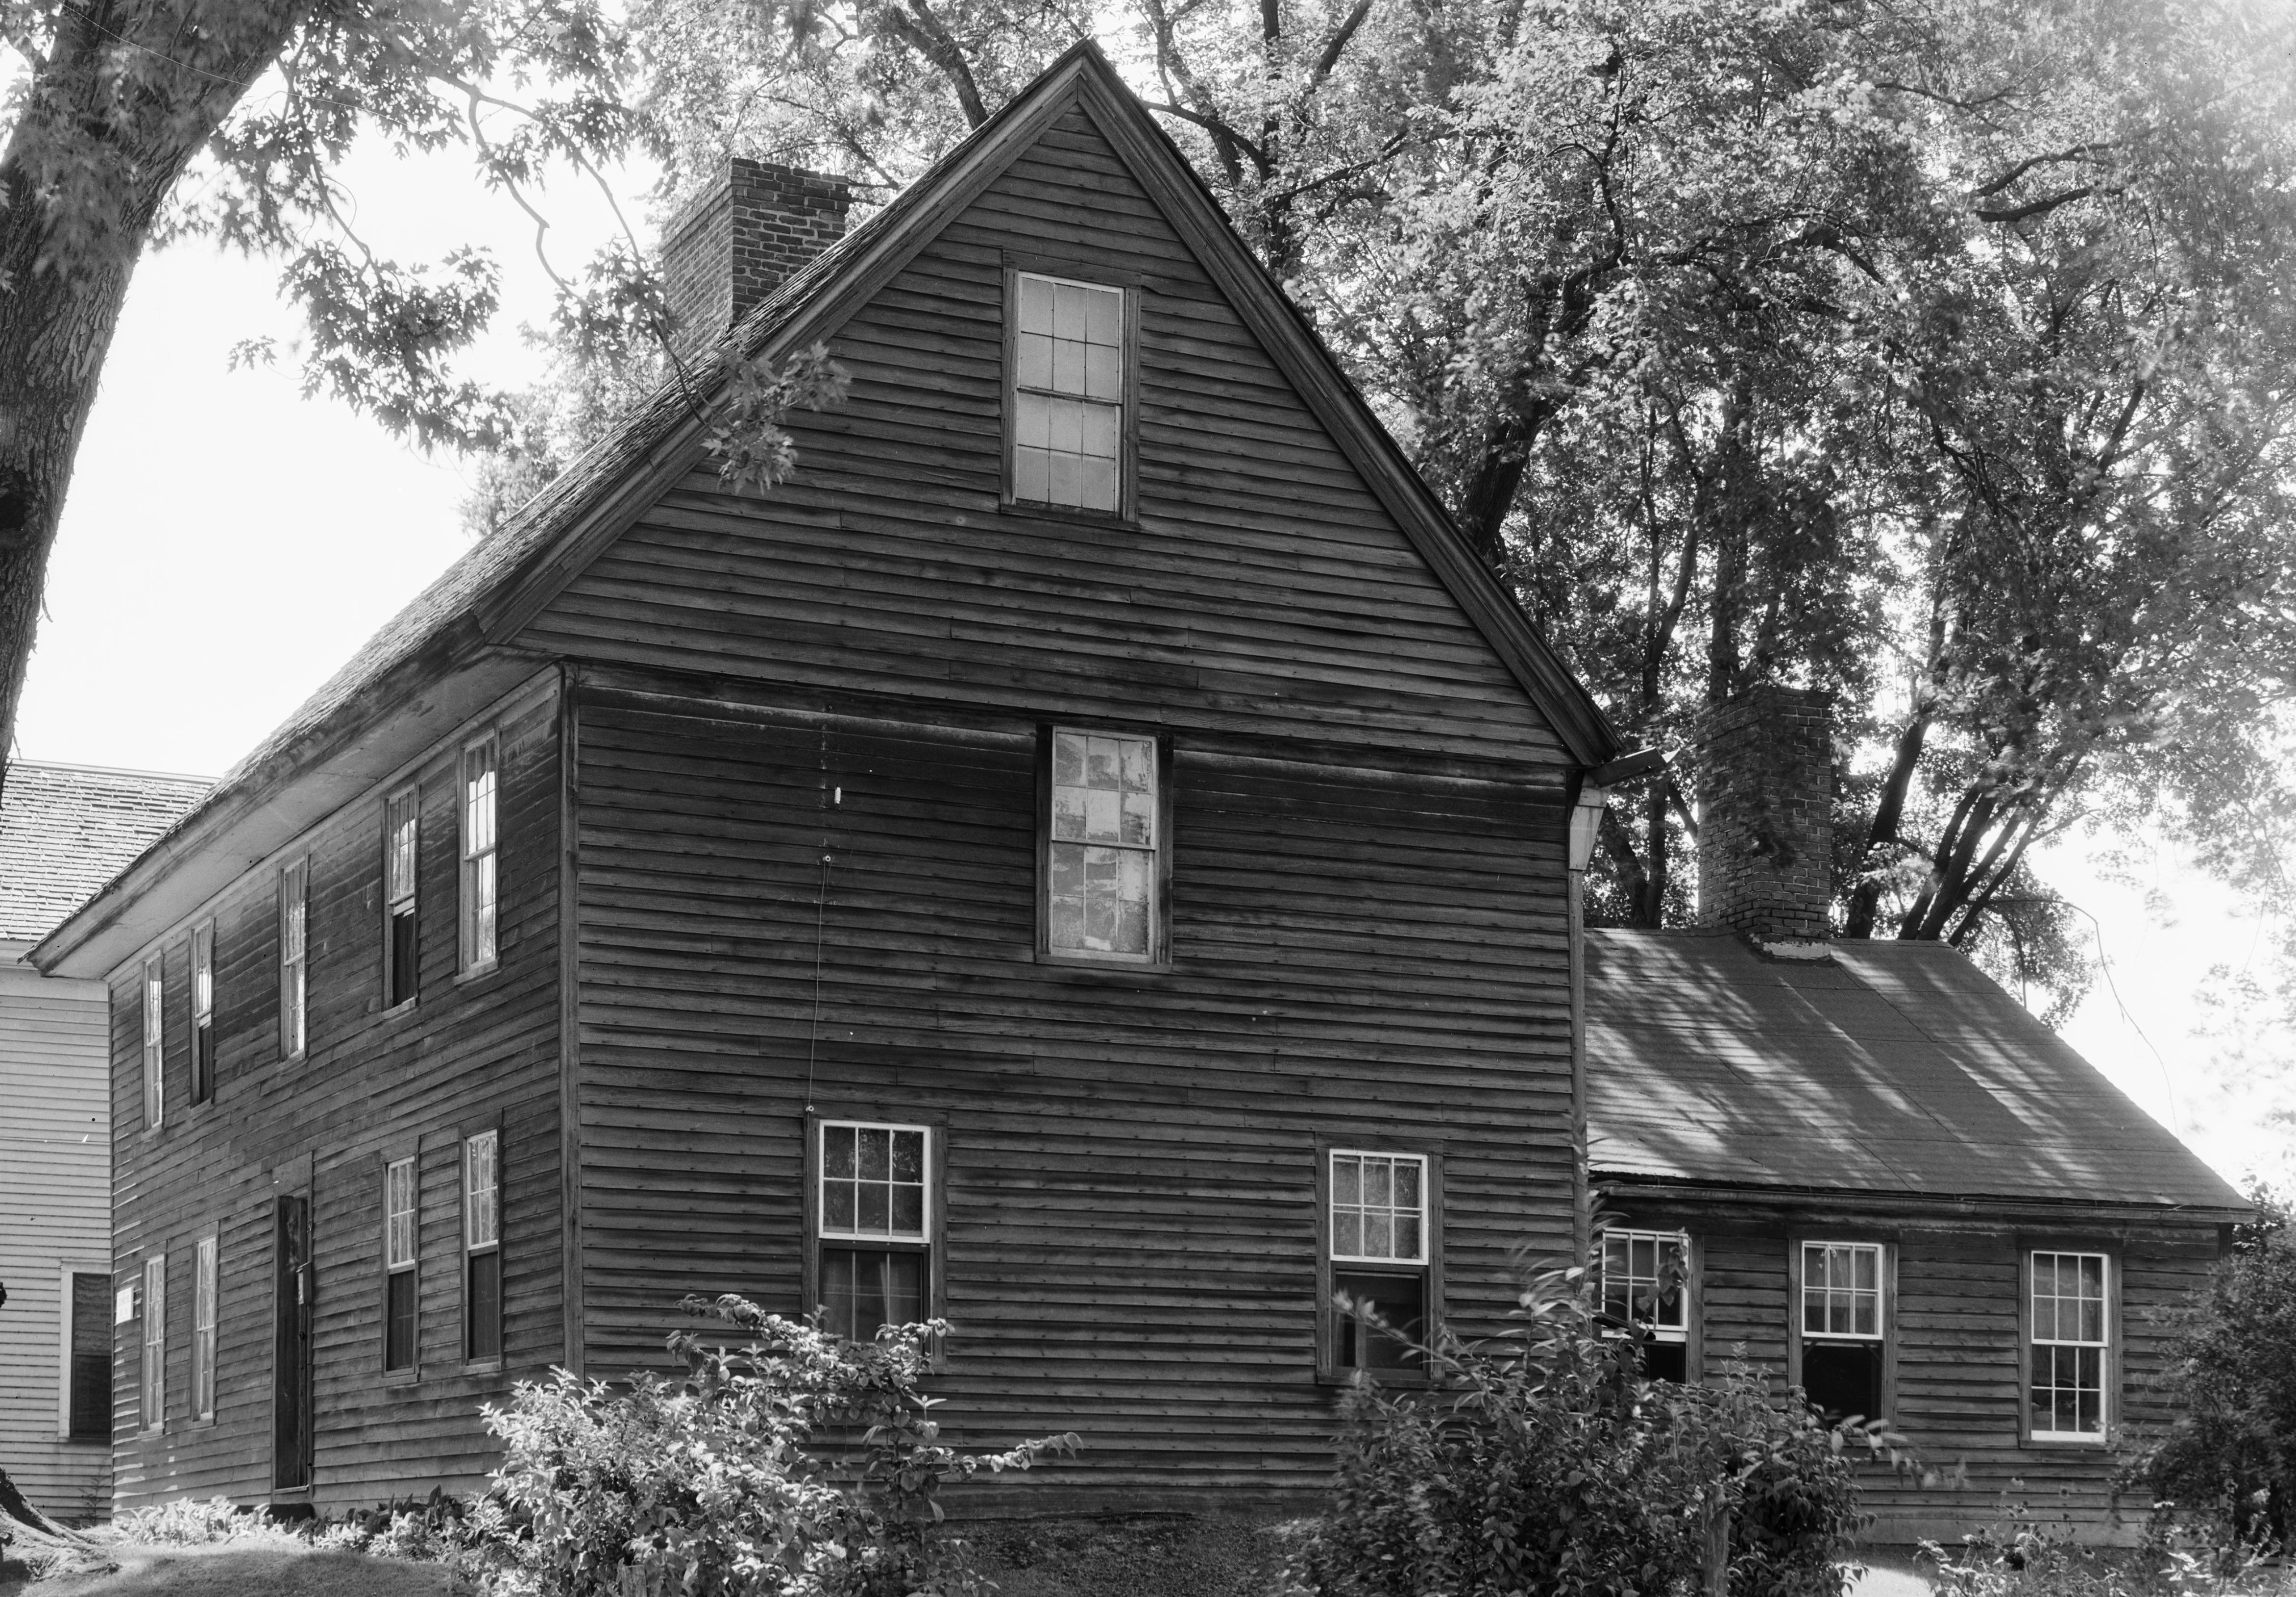 A c.1930s photo of the house that includes a rear ell that was added sometime earlier.